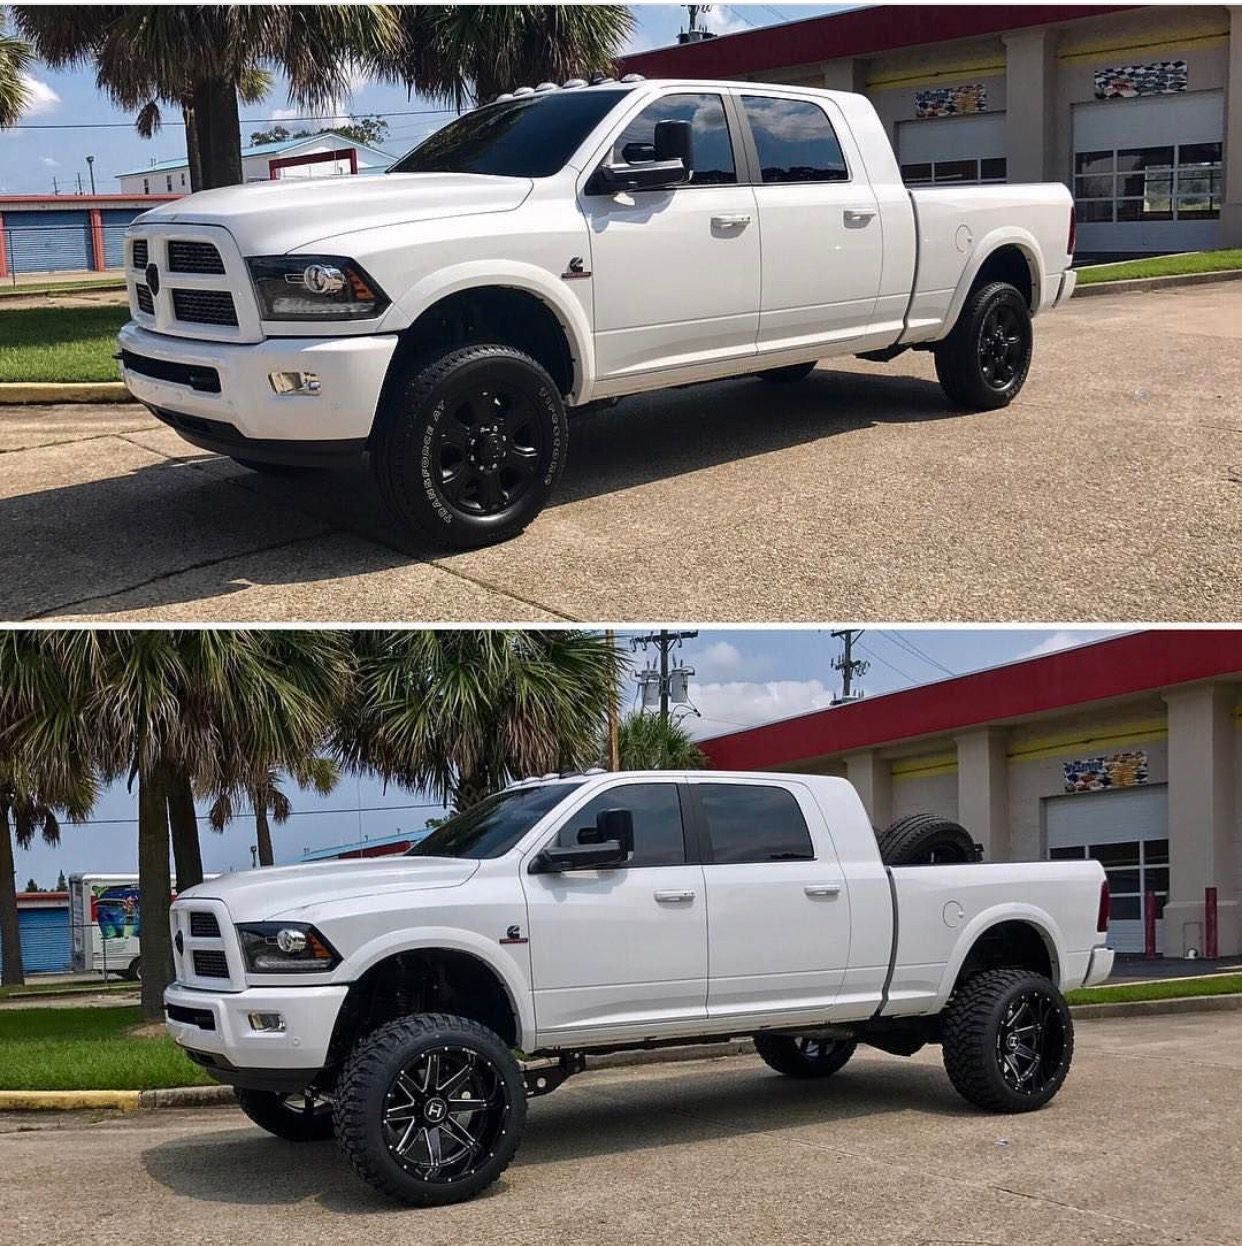 2014 Lifted Ram Mega Cab 2500: Before And After. White Lifted Ram 2500 Mega Cab